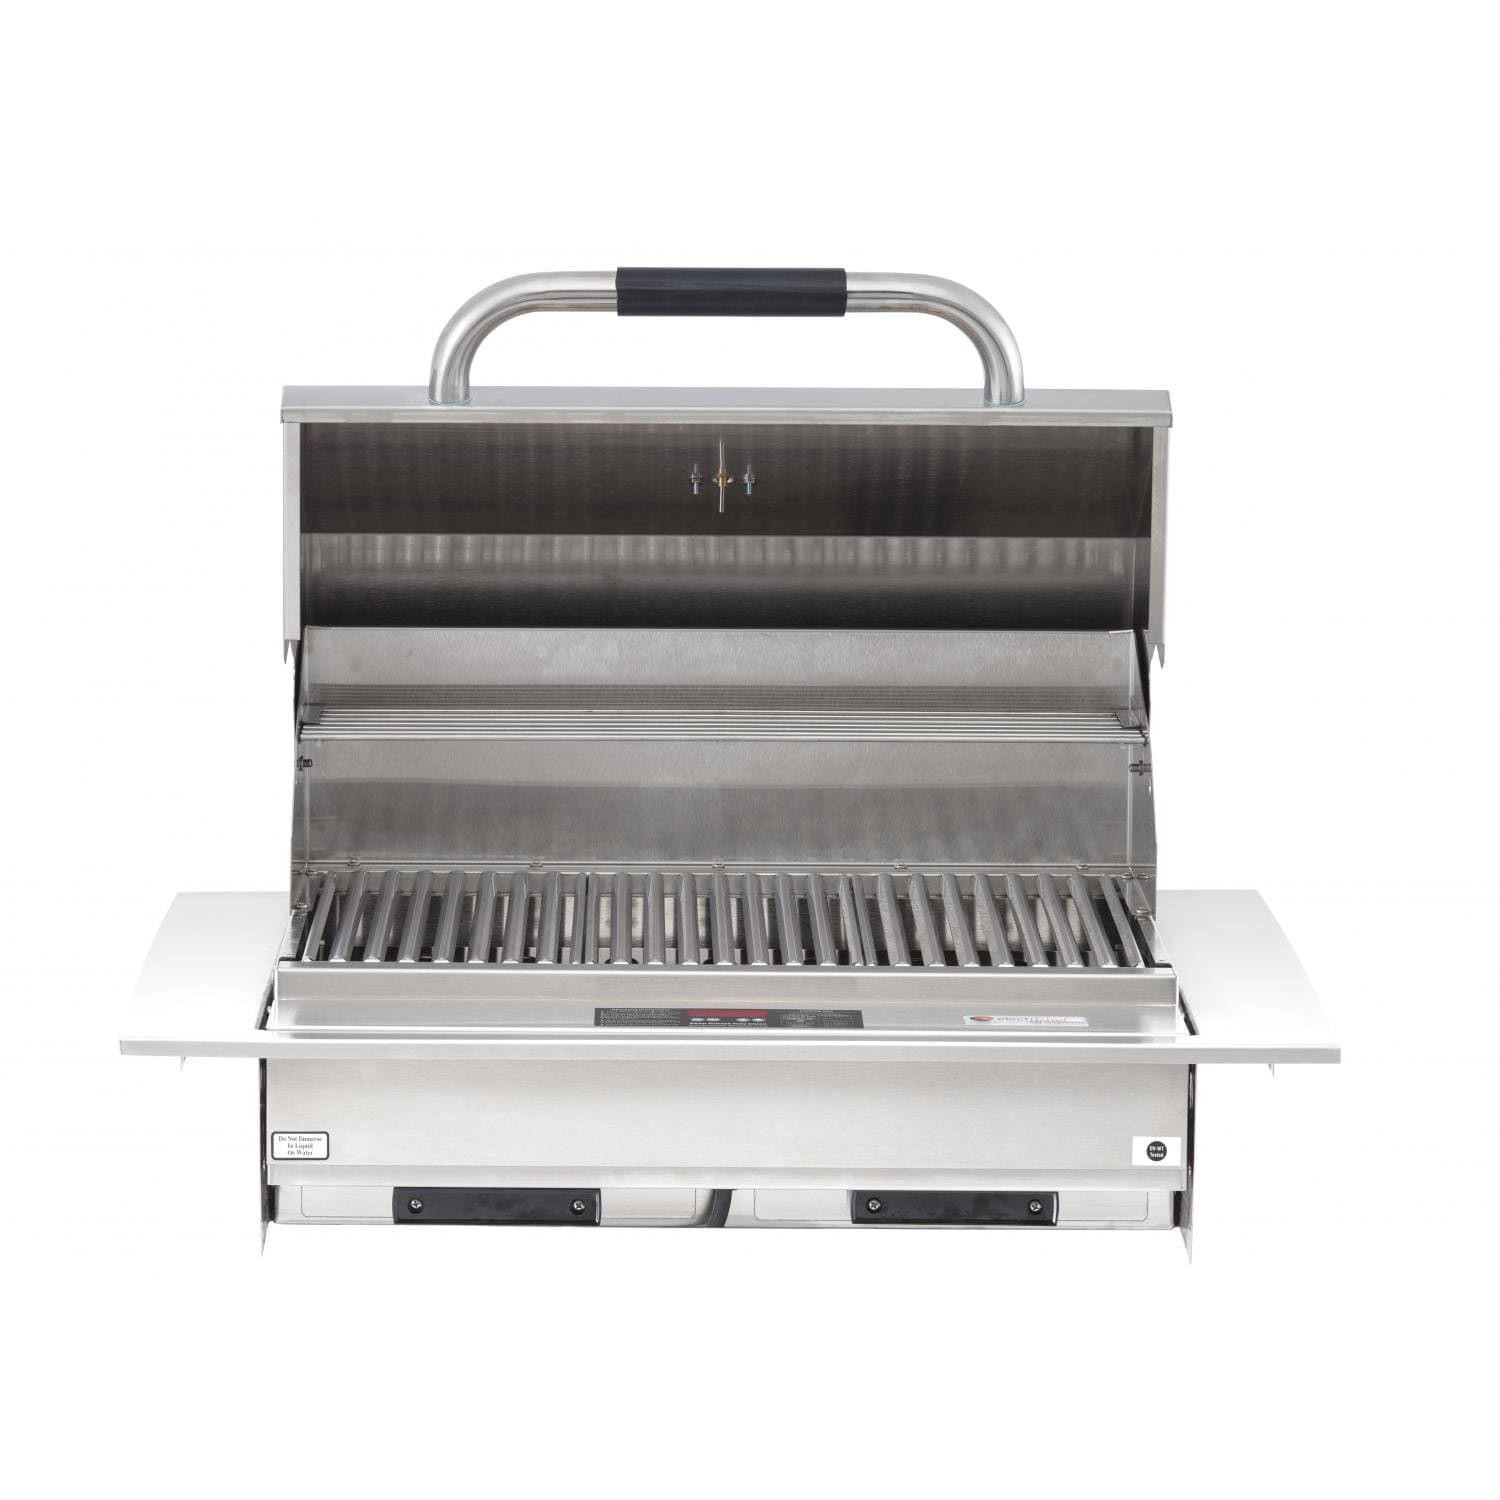 Grill 24 Electri Chef 4400 Series 24 Inch Built In Electric Grill 4400 Ec 336 I 24